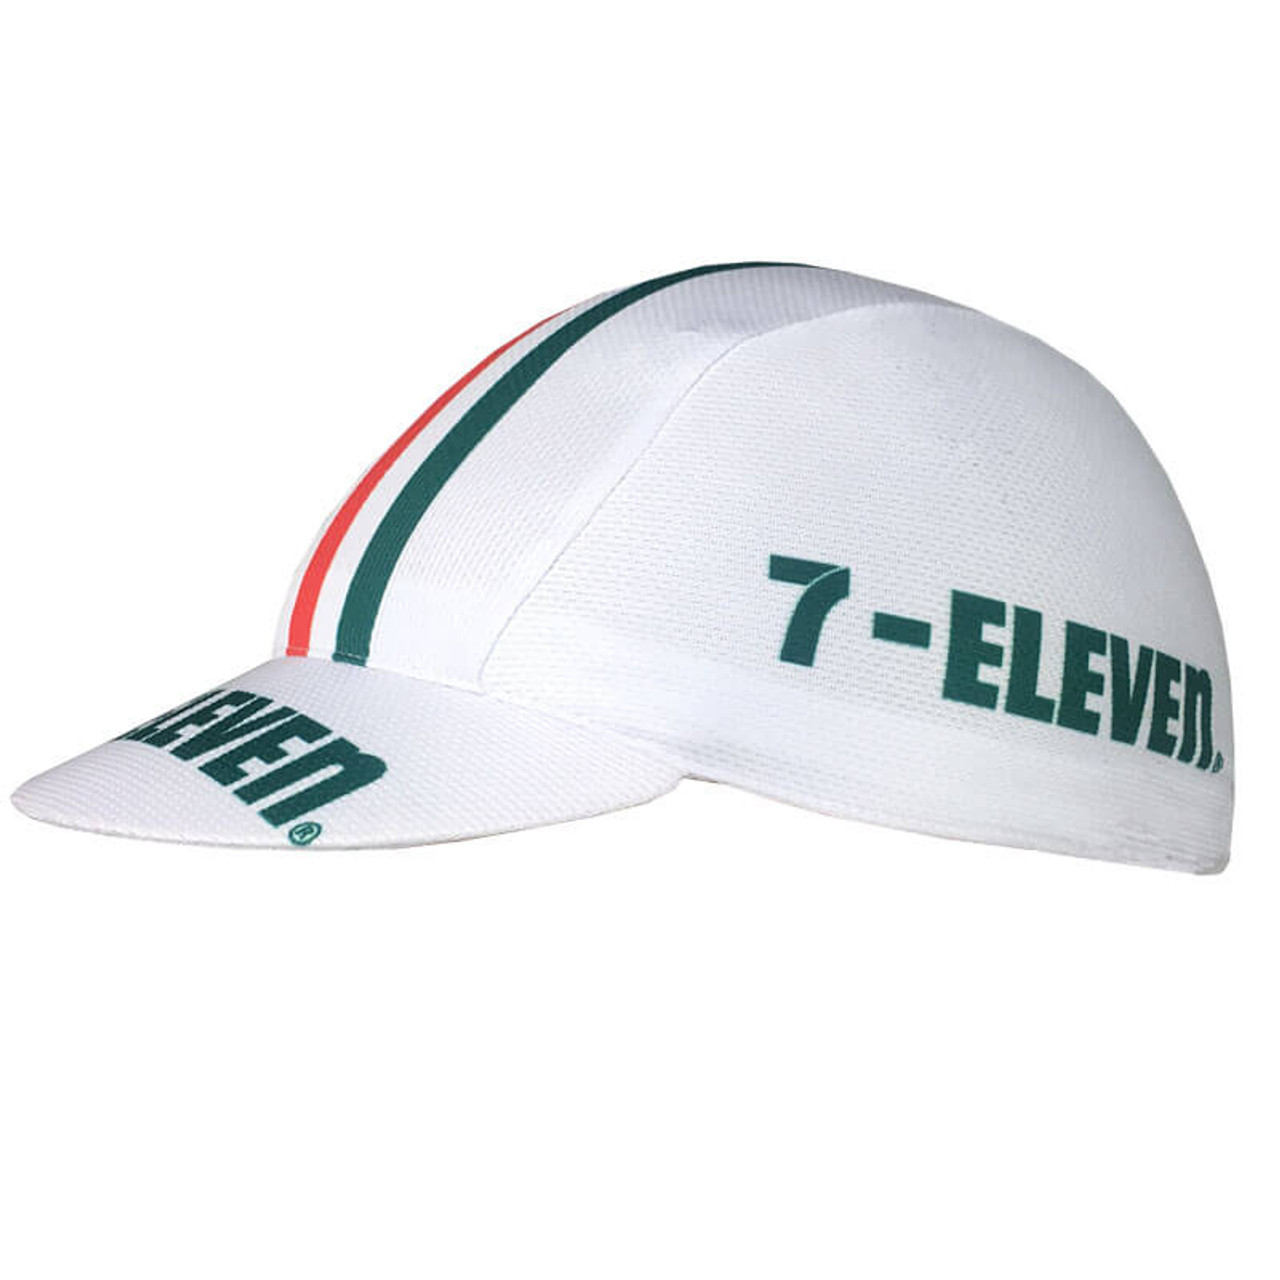 Retro 7-Eleven Cycling Cap  f497b3a73